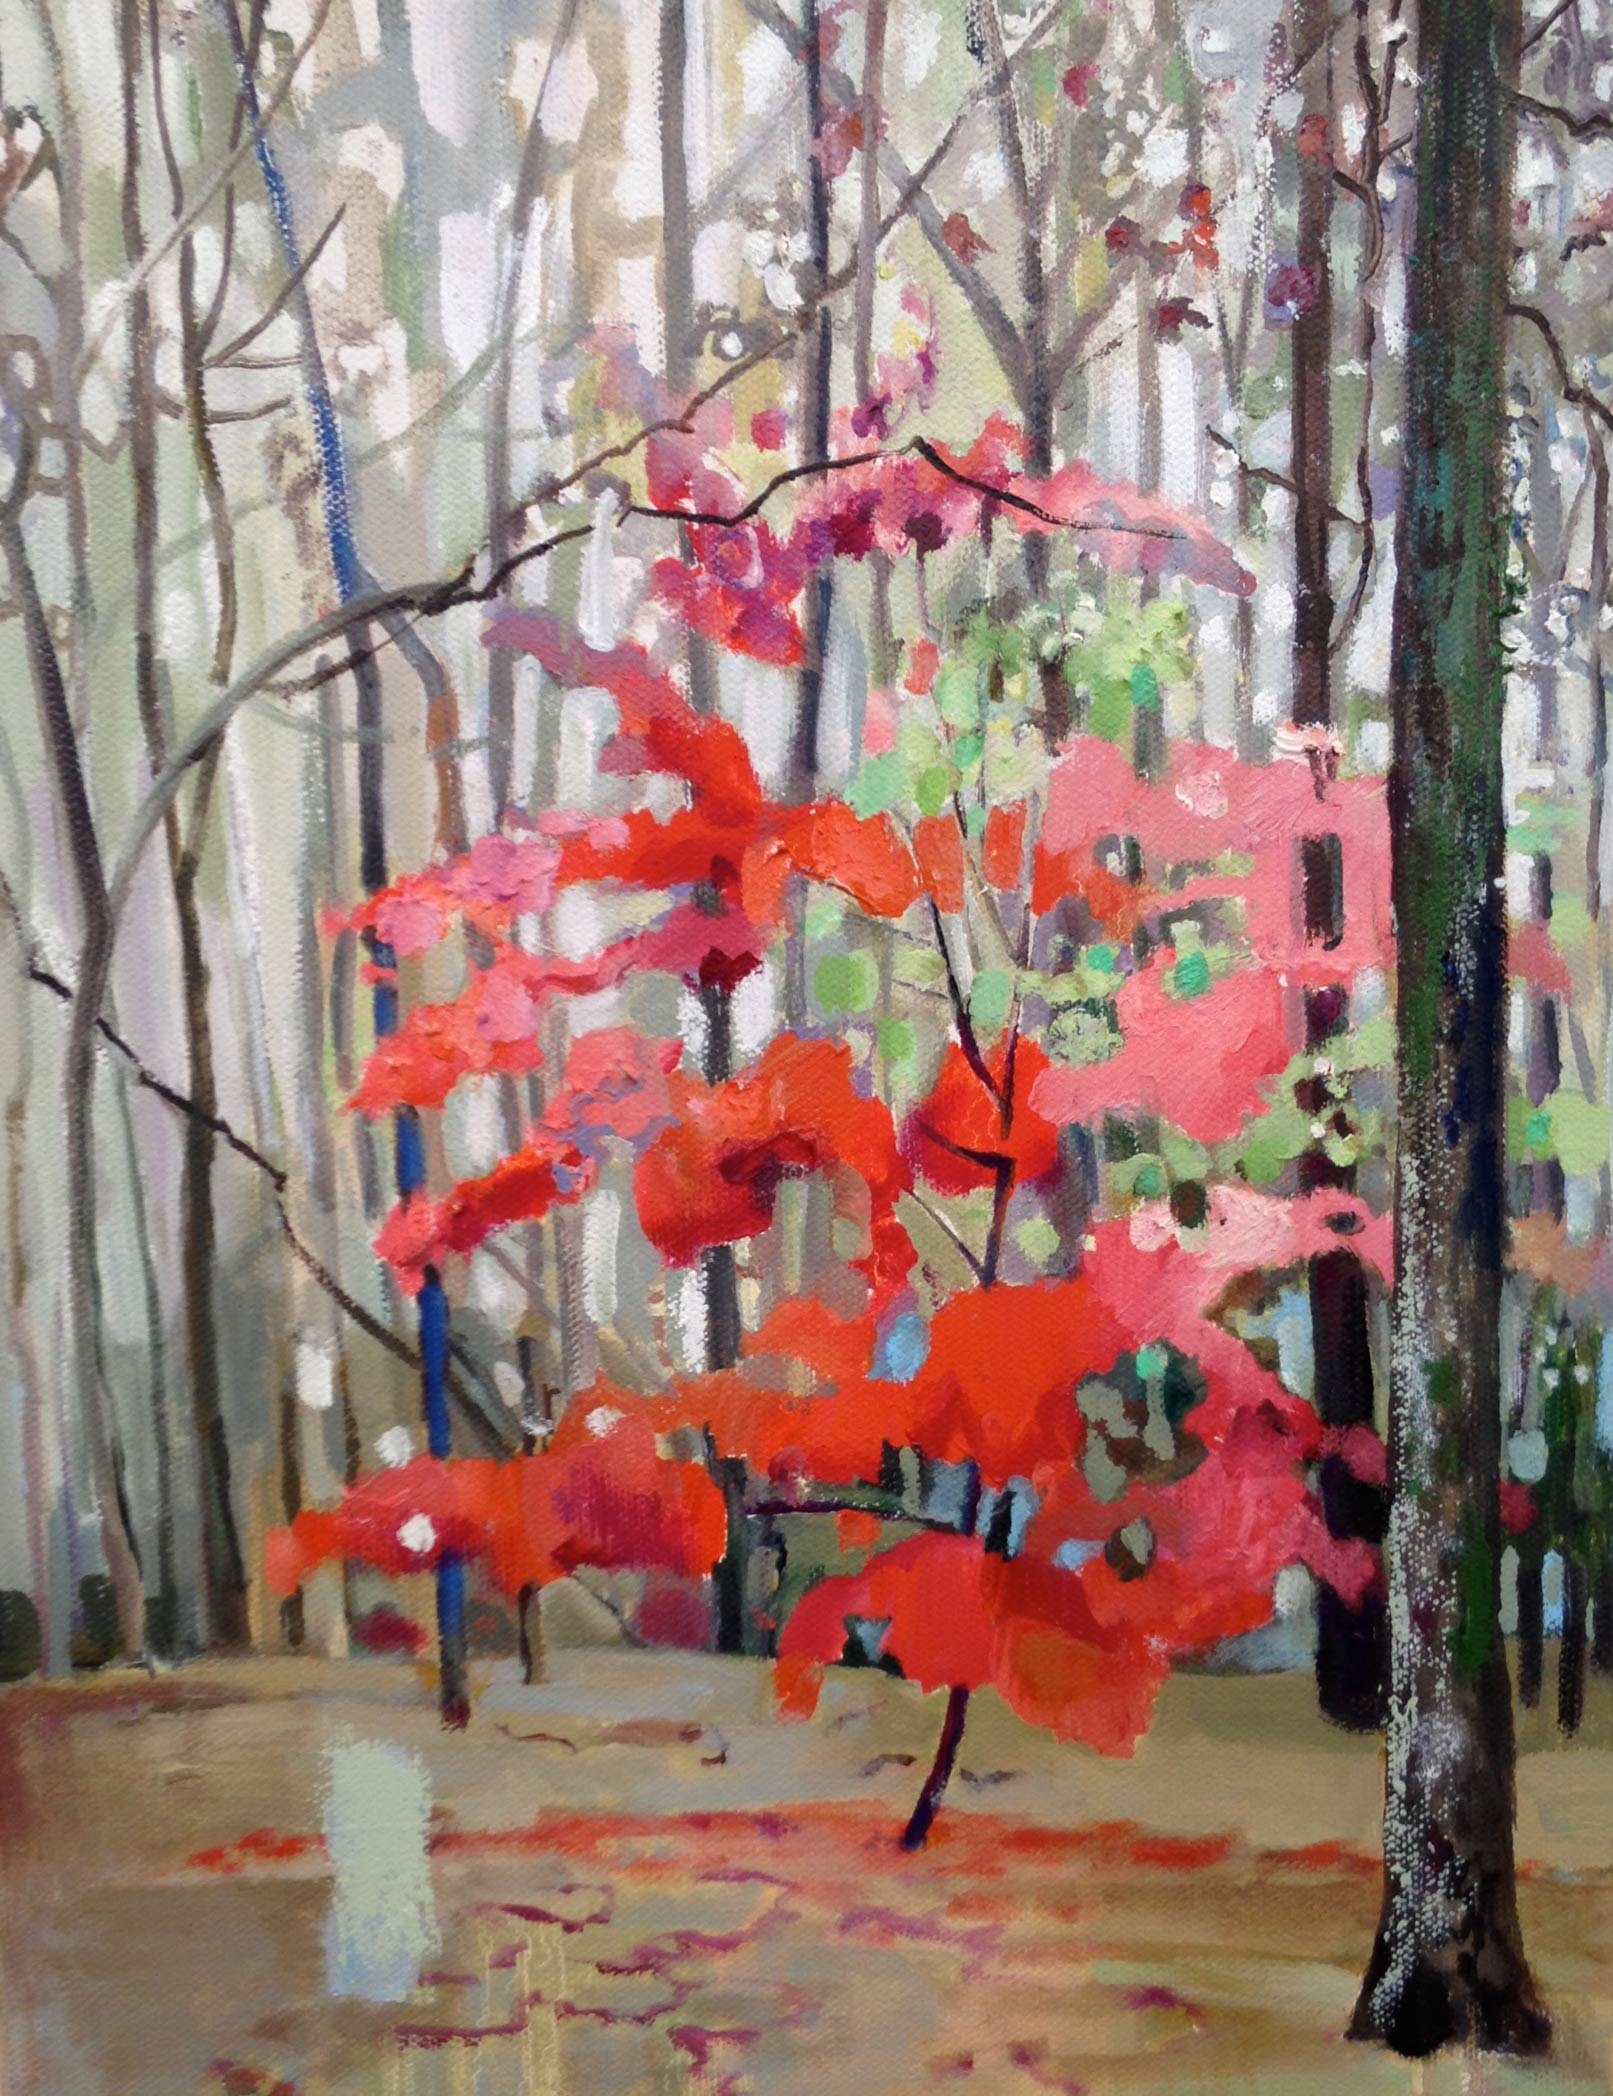 ‏Red Maple, Rainy Day    ‏oil and oil stick  14 x 11 inches, 2016